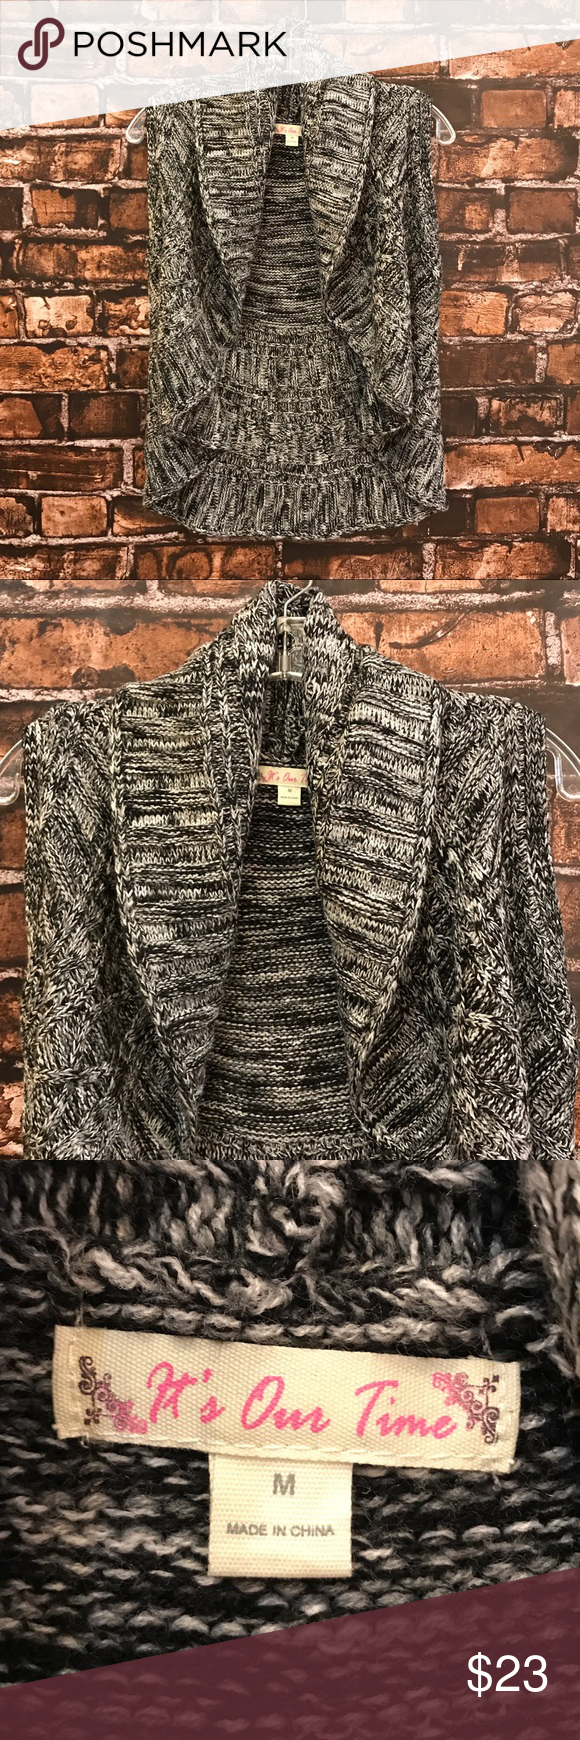 Women's M It's Our Time Black marled ruffle vest✨ Love!! It's Our Time Black marled sweater vest!! Size Medium!! In good condition and absolutely adorable!! (WT867) 🖤✨ It's Our Time Jackets & Coats Vests